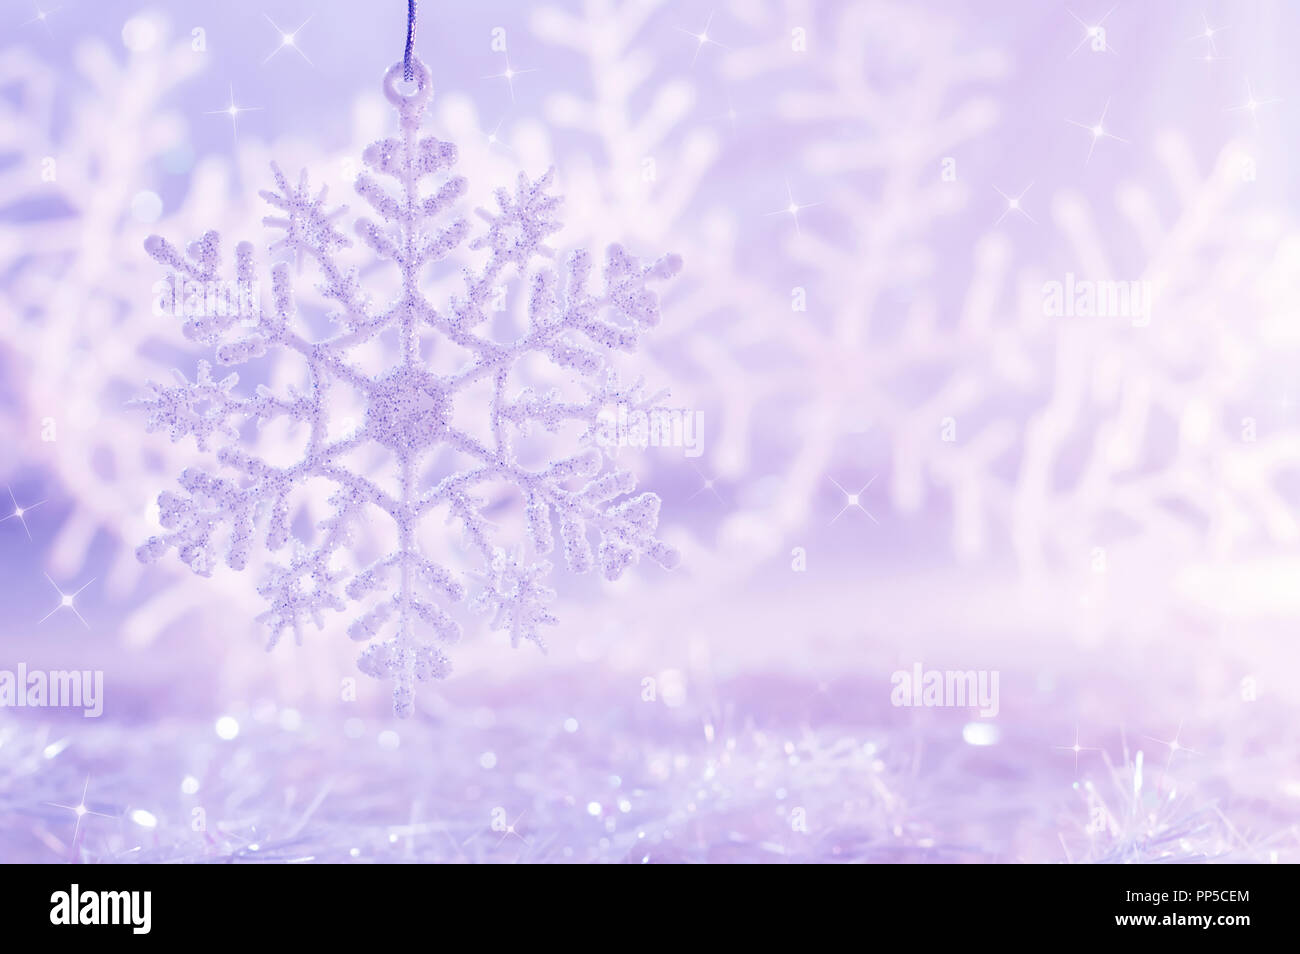 light purple background with snowflakes christmas background stock